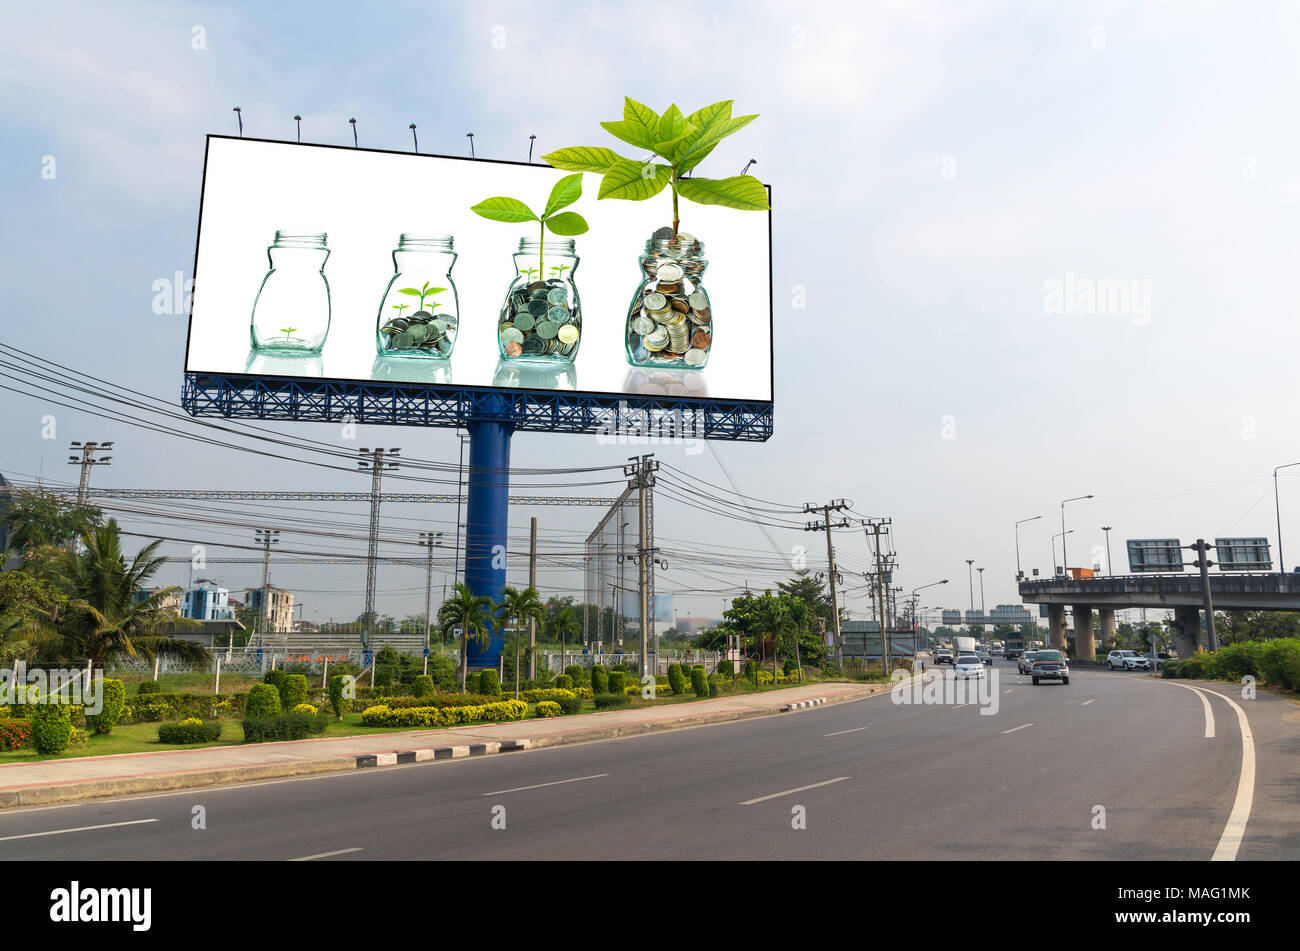 Billboard showing the mix coins and seed in clear bottle on white background for advertisement, Business investment growth concept - Stock Image